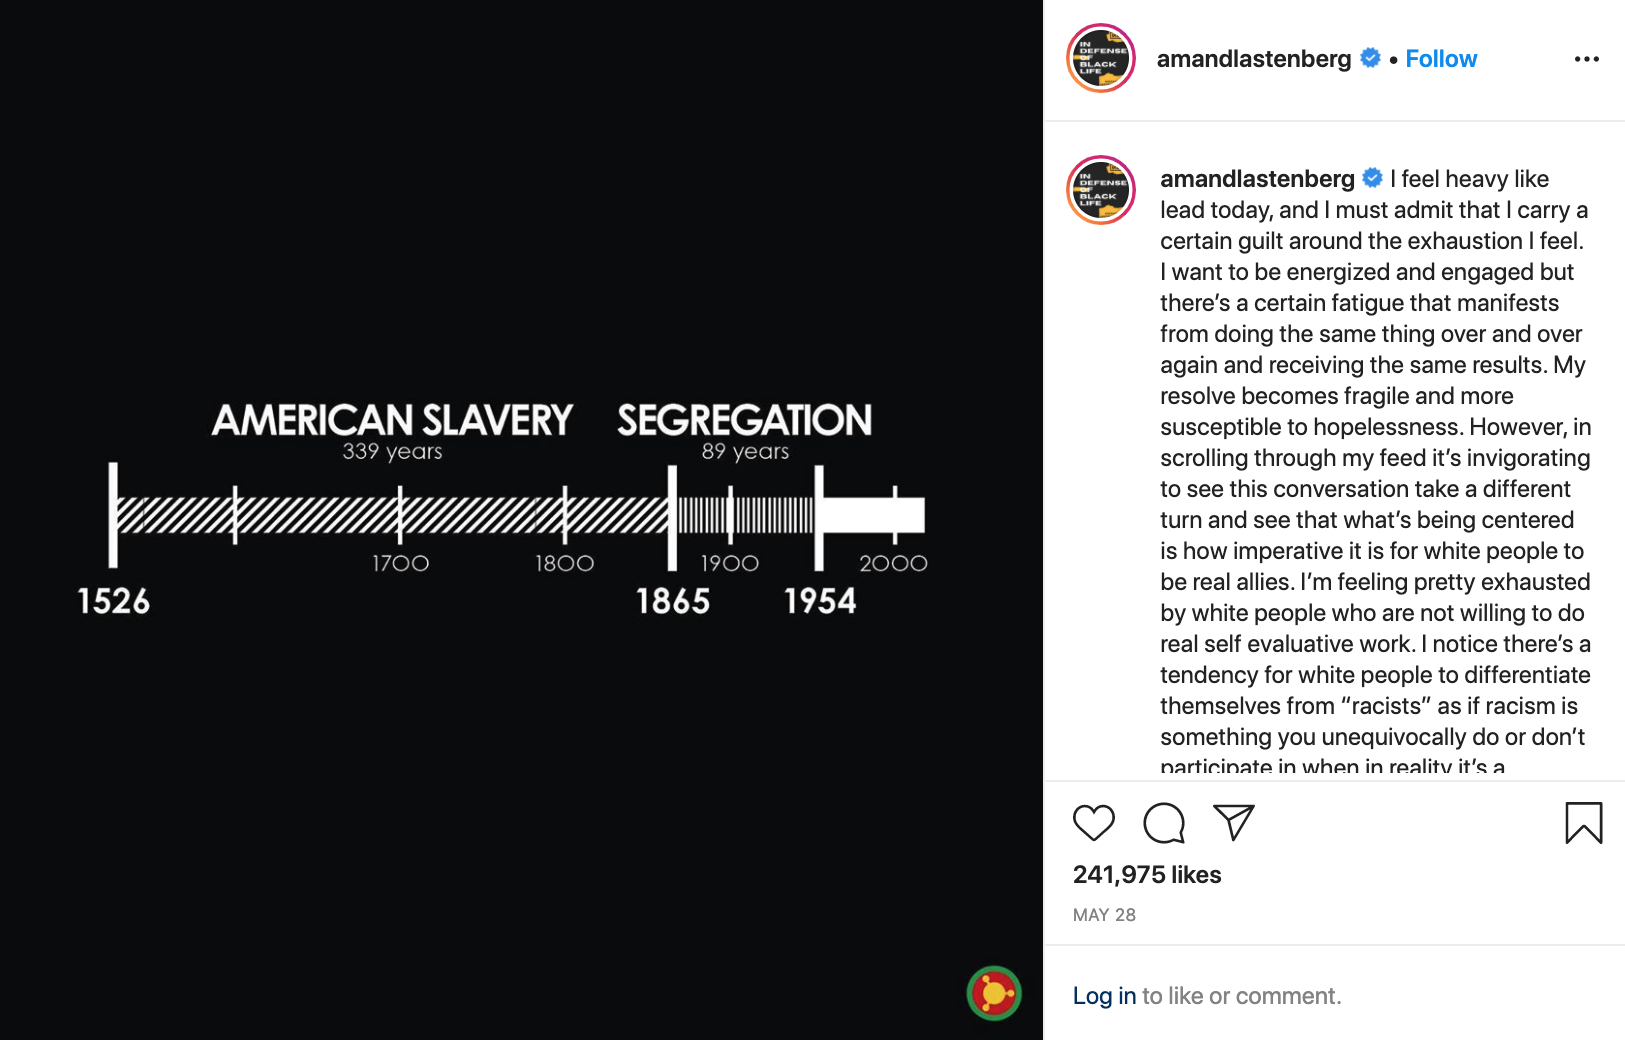 US racism timeline, journal of wild culture, ©2020